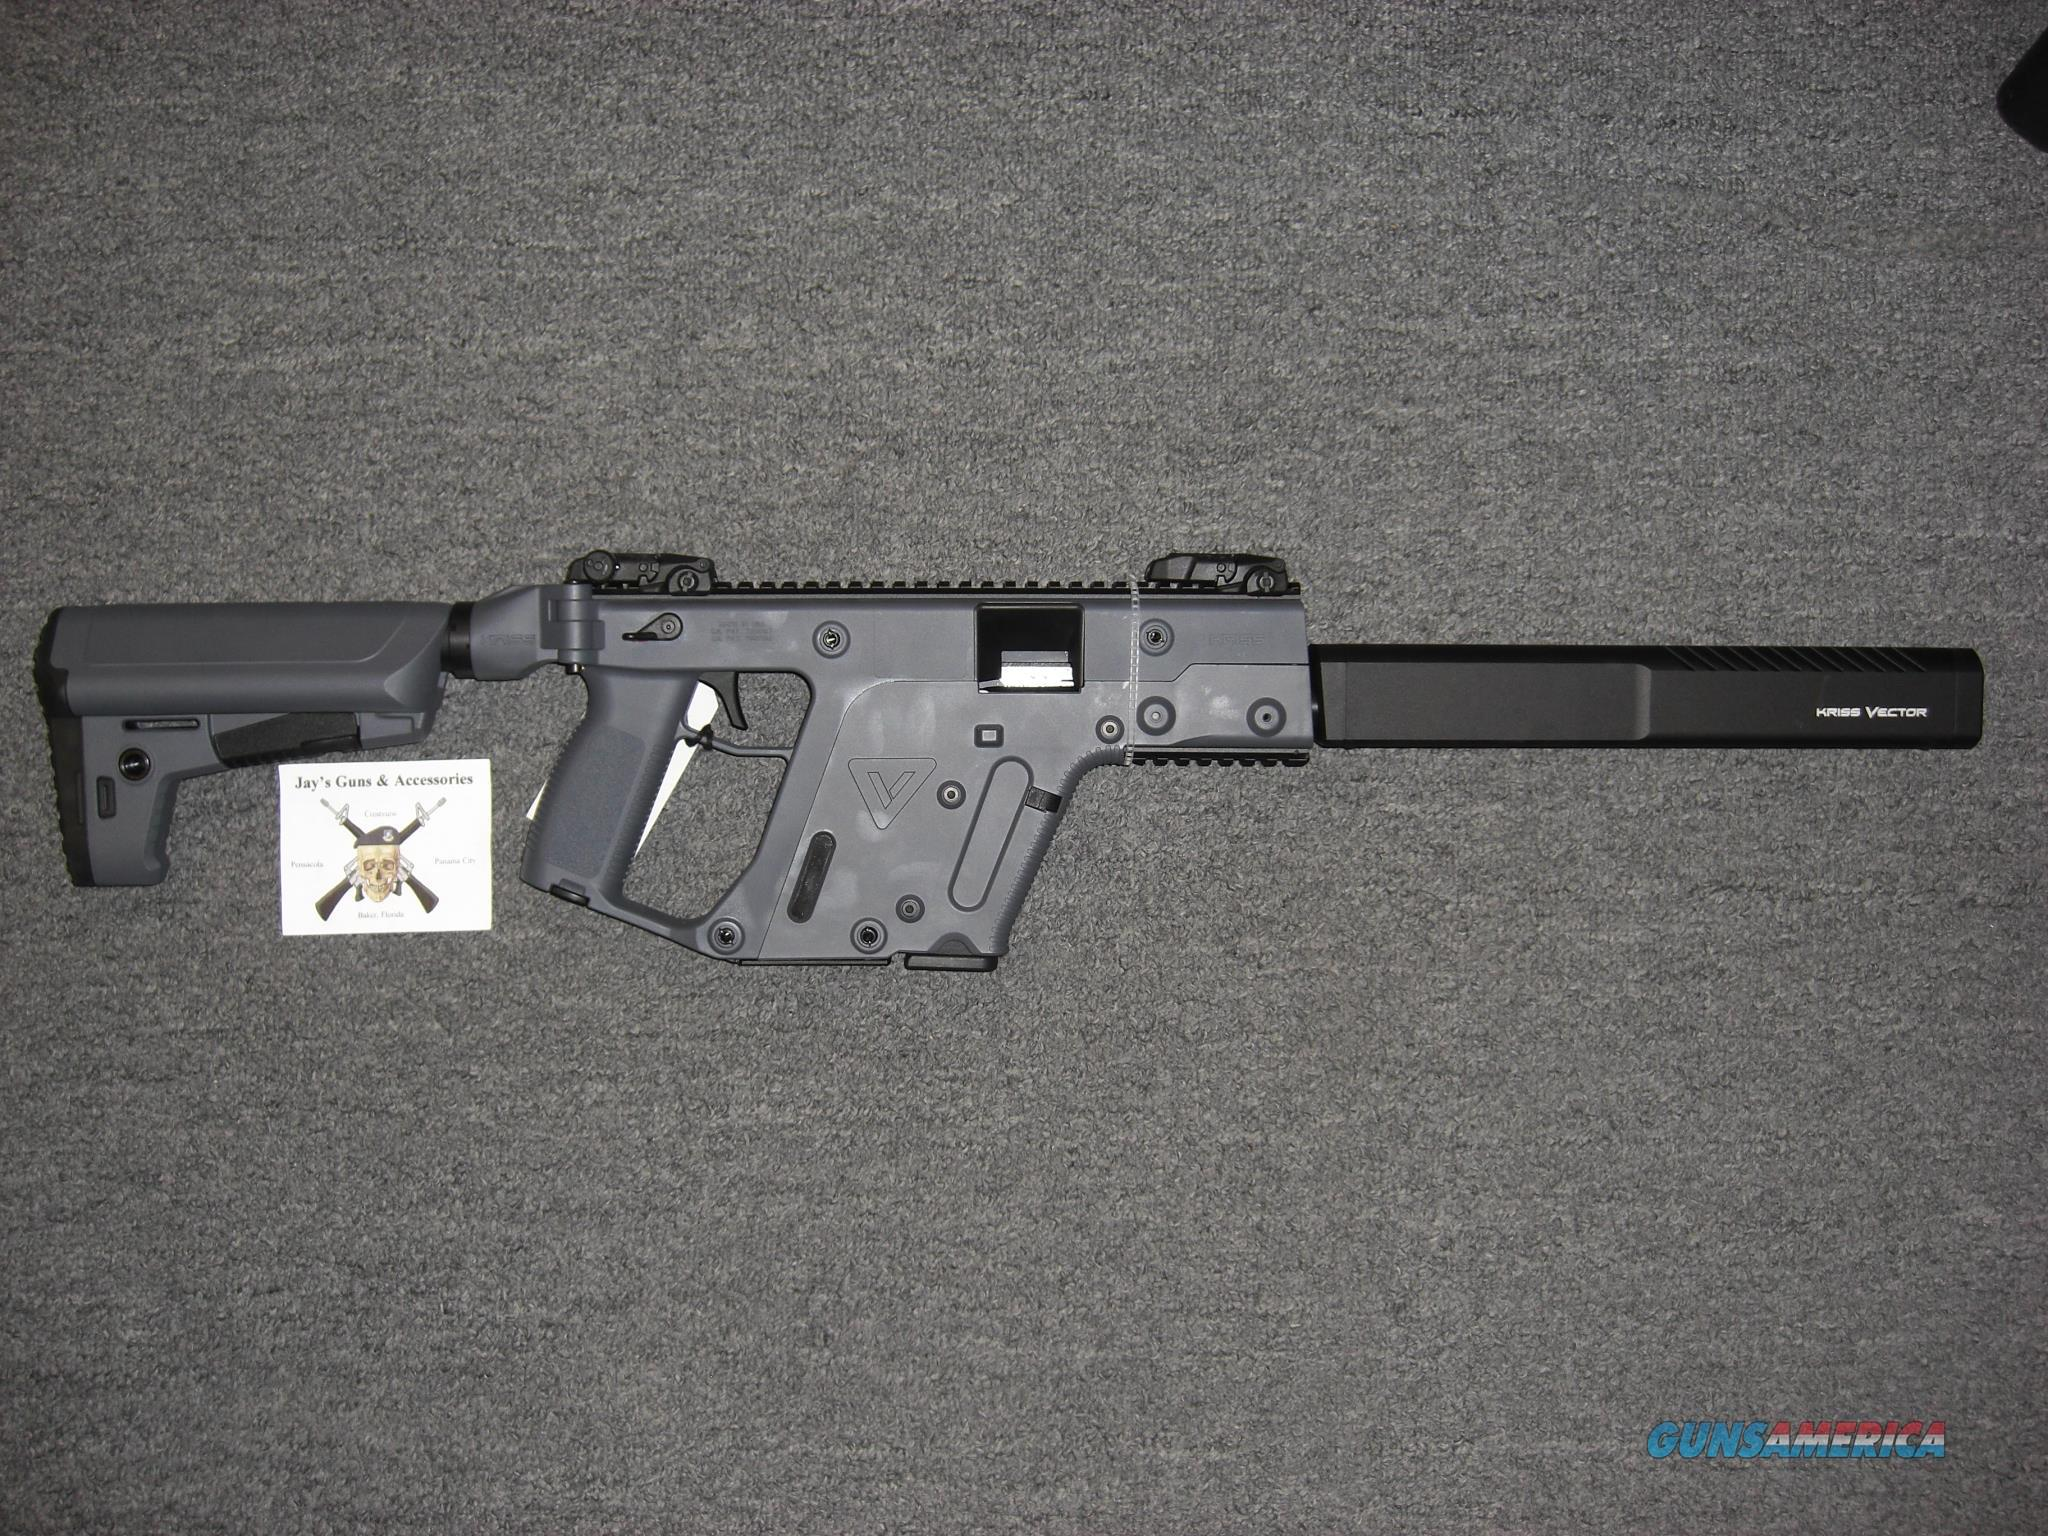 Kriss Vector CRB Gen 2 w/Combat Grey Finish Uses Glock 21 Mags  Guns > Rifles > Kriss Tactical Rifles